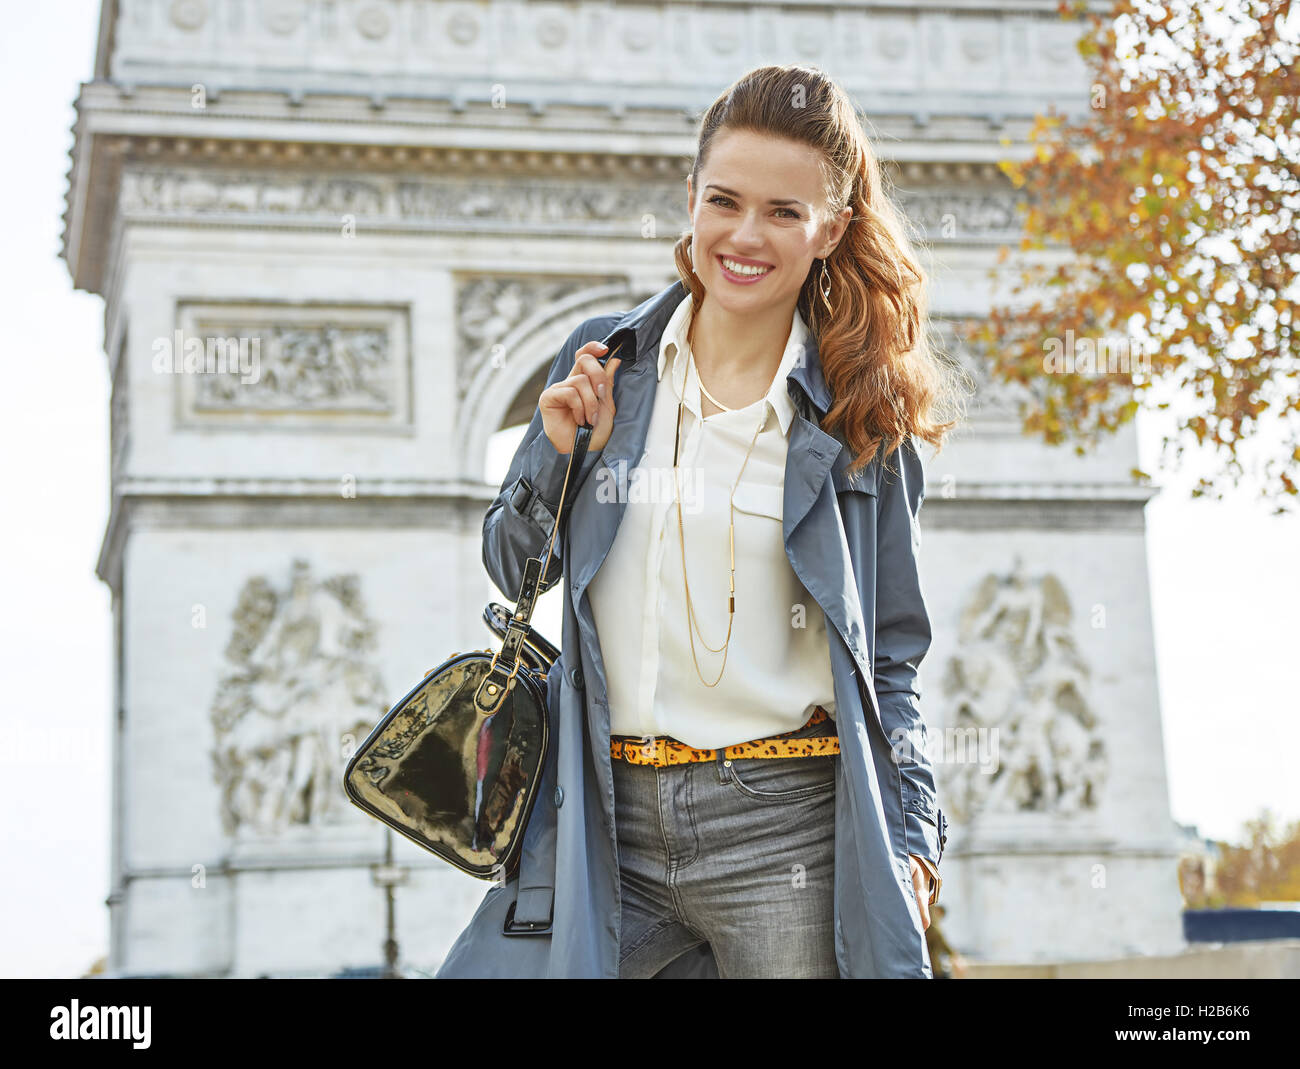 Stylish autumn in Paris. Portrait of happy young elegant woman in trench coat in Paris, France - Stock Image